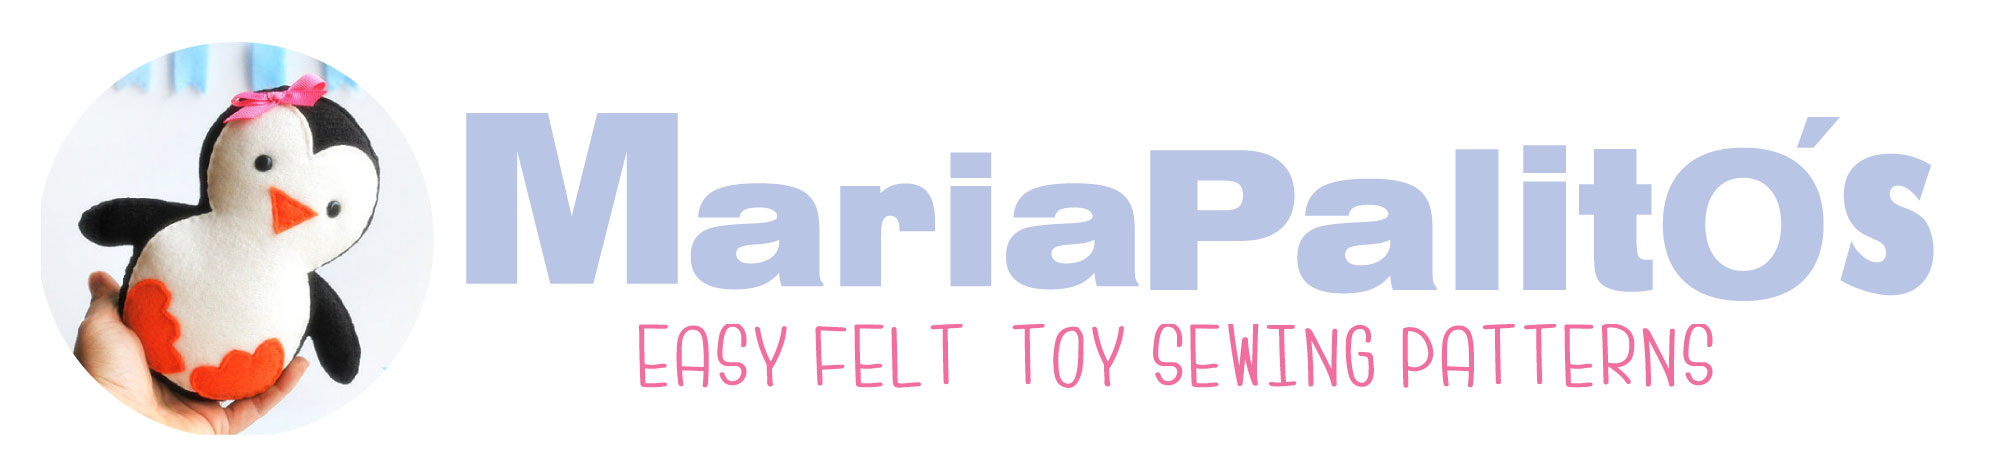 Easy Felt Toys Sewing Patterns by MariaPalito